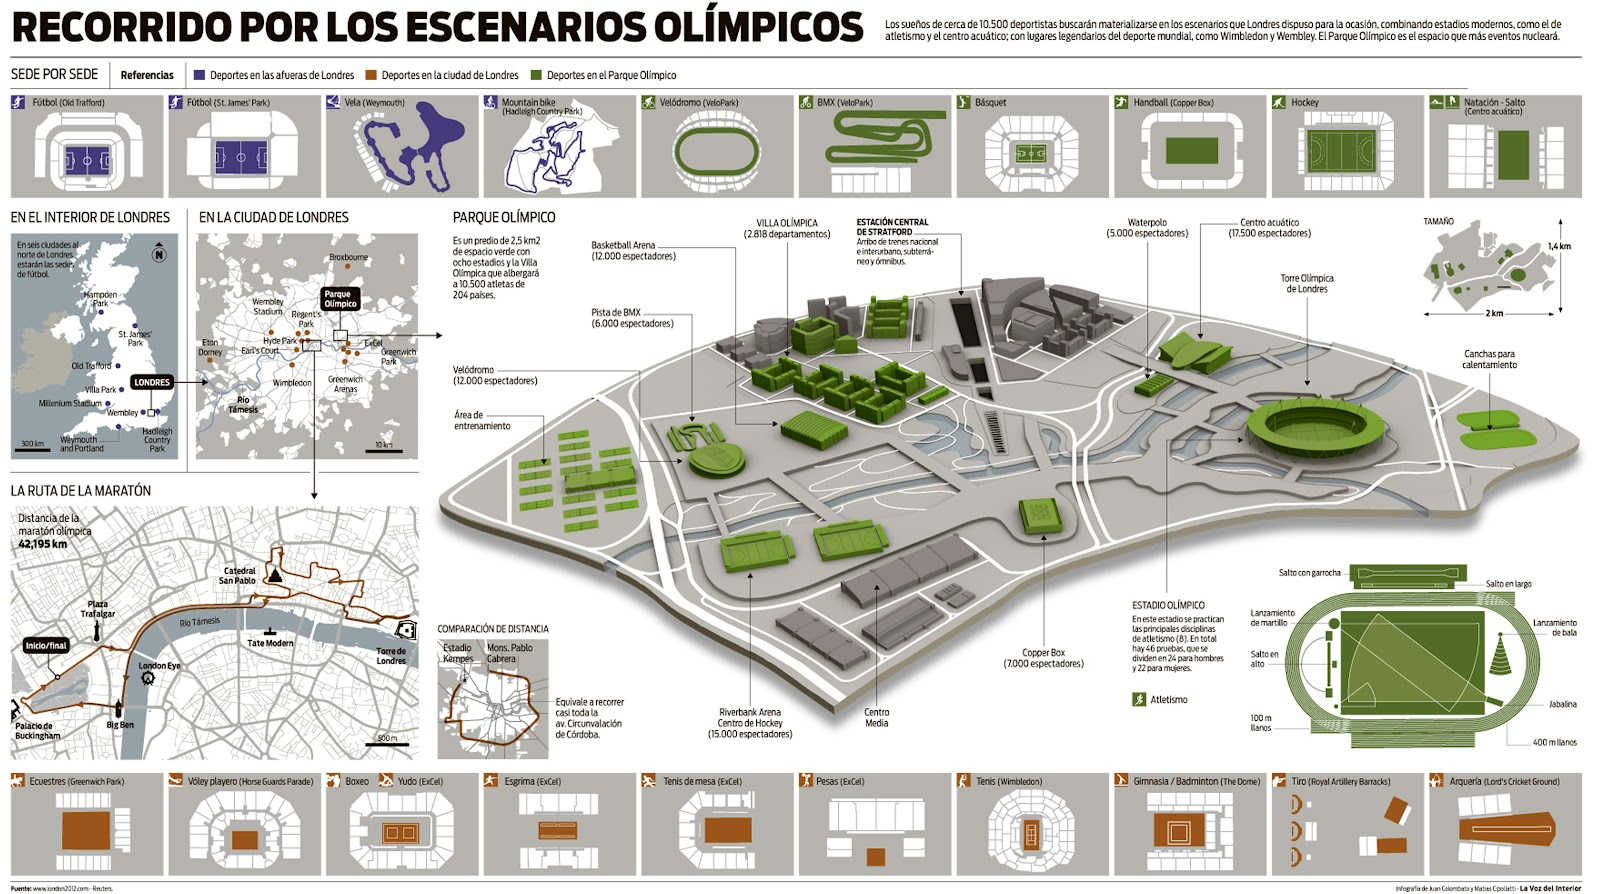 The Olympics, infographic by Matias Cipollatti